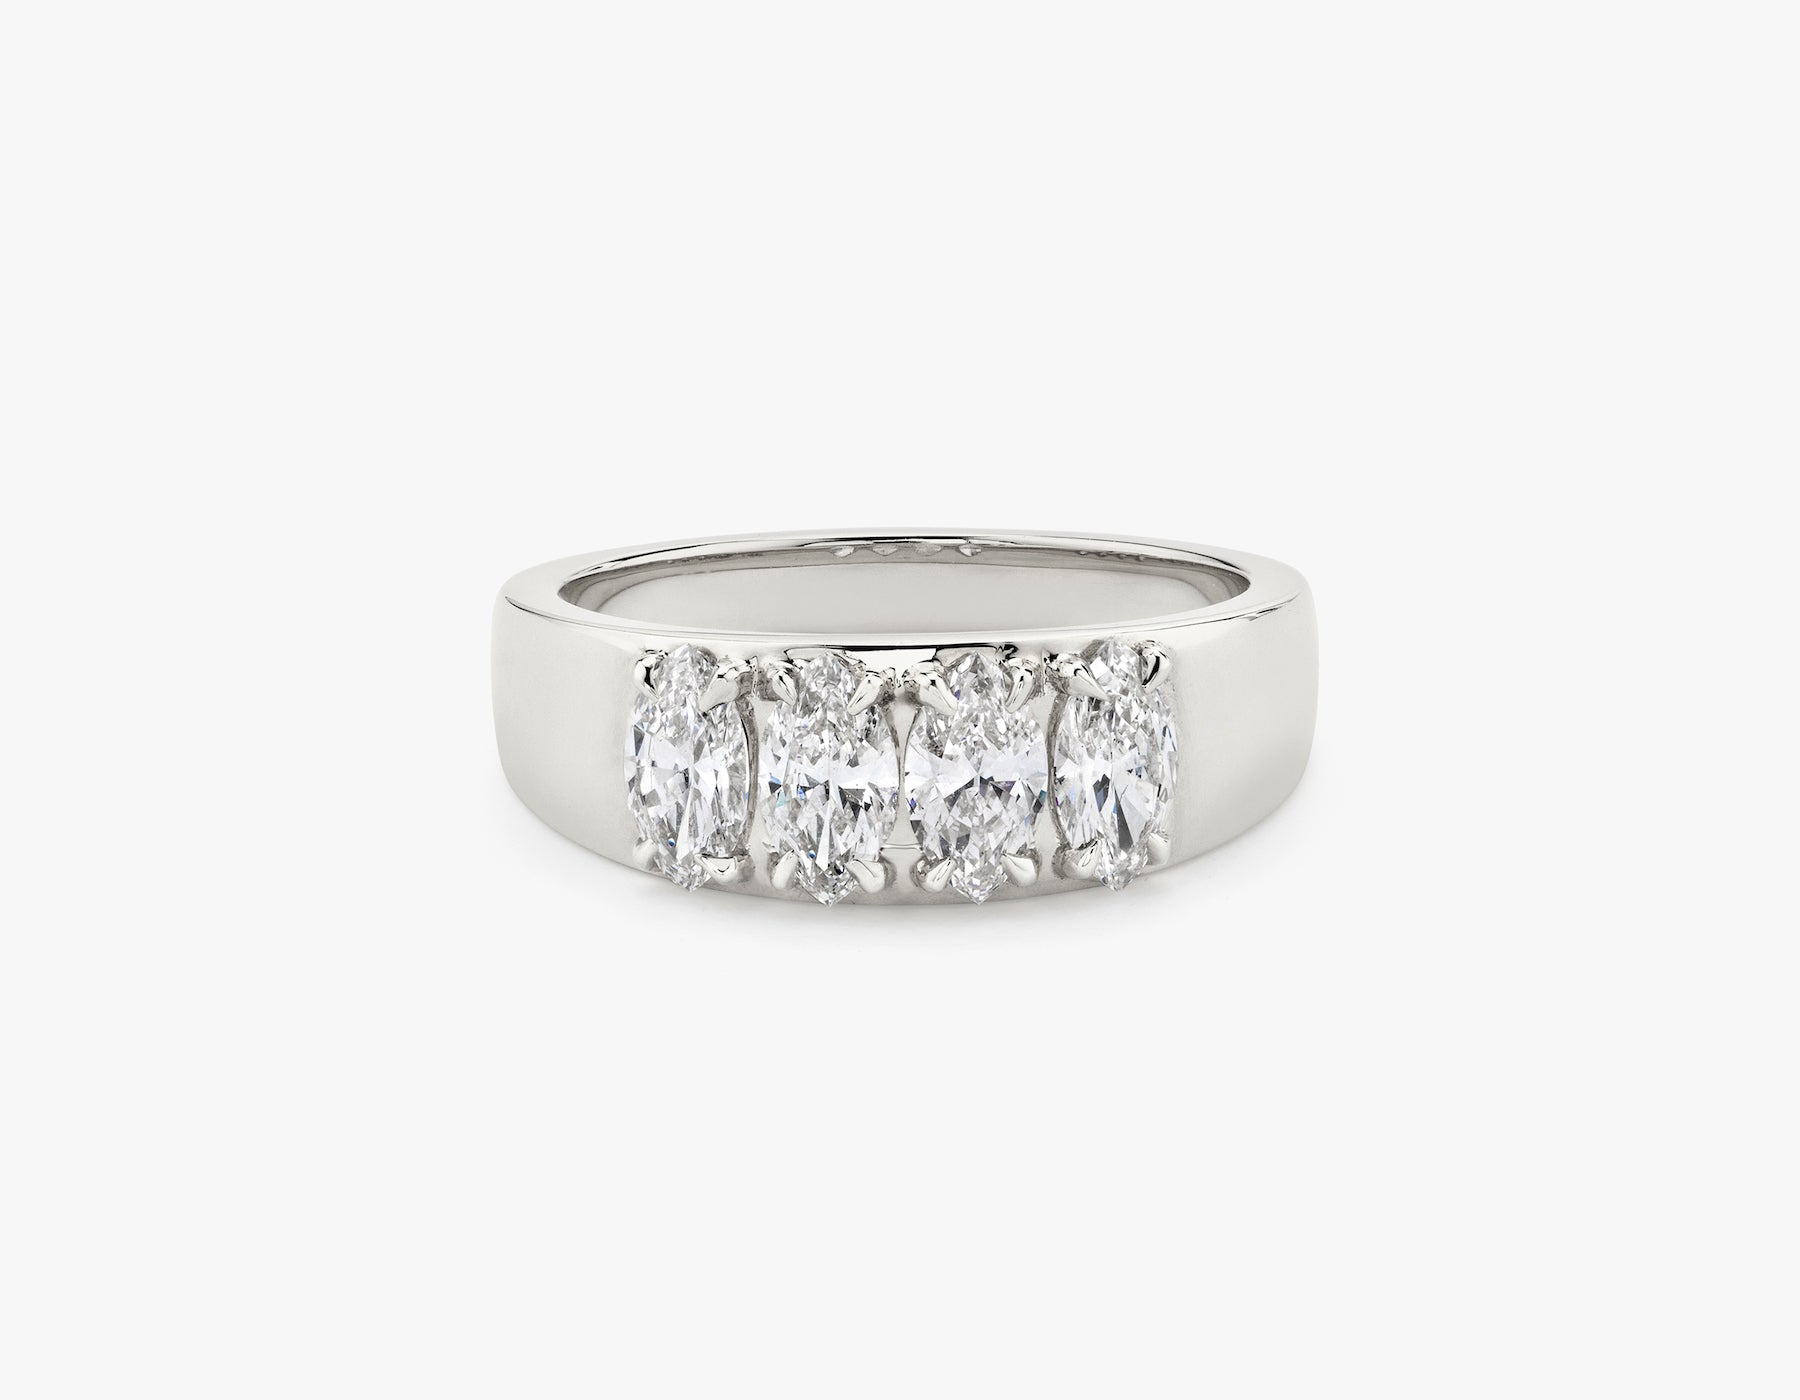 Vrai simple minimalist marquise Diamond Tetrad Band .25ct Marquise Diamond Ring, 14K White Gold